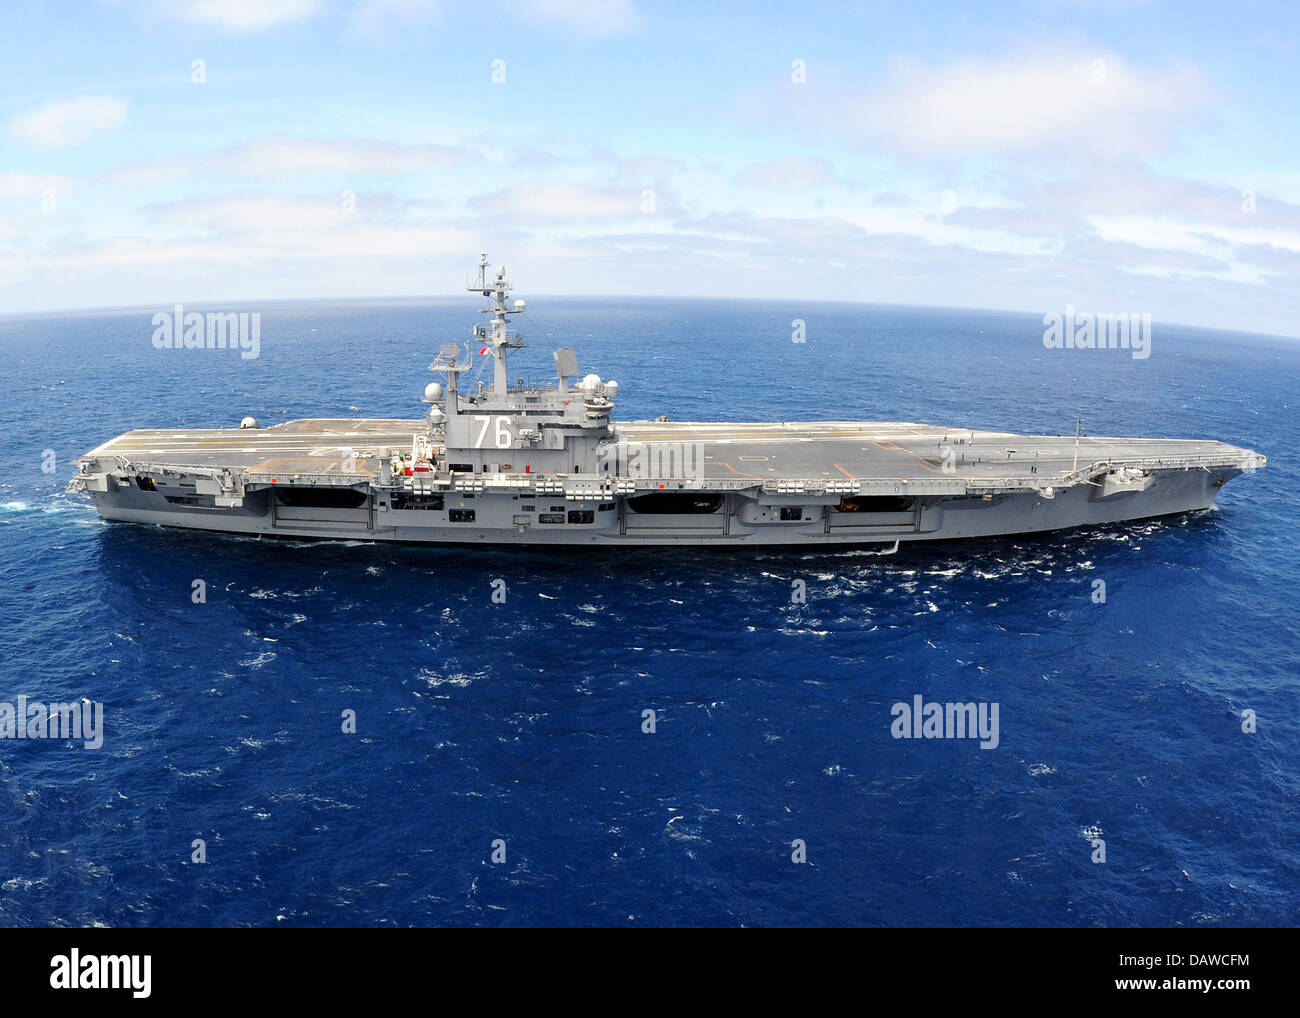 US Navy nuclear aircraft carrier USS Ronald Reagan conducting carrier qualifications July 16, 2013 in the Pacific - Stock Image